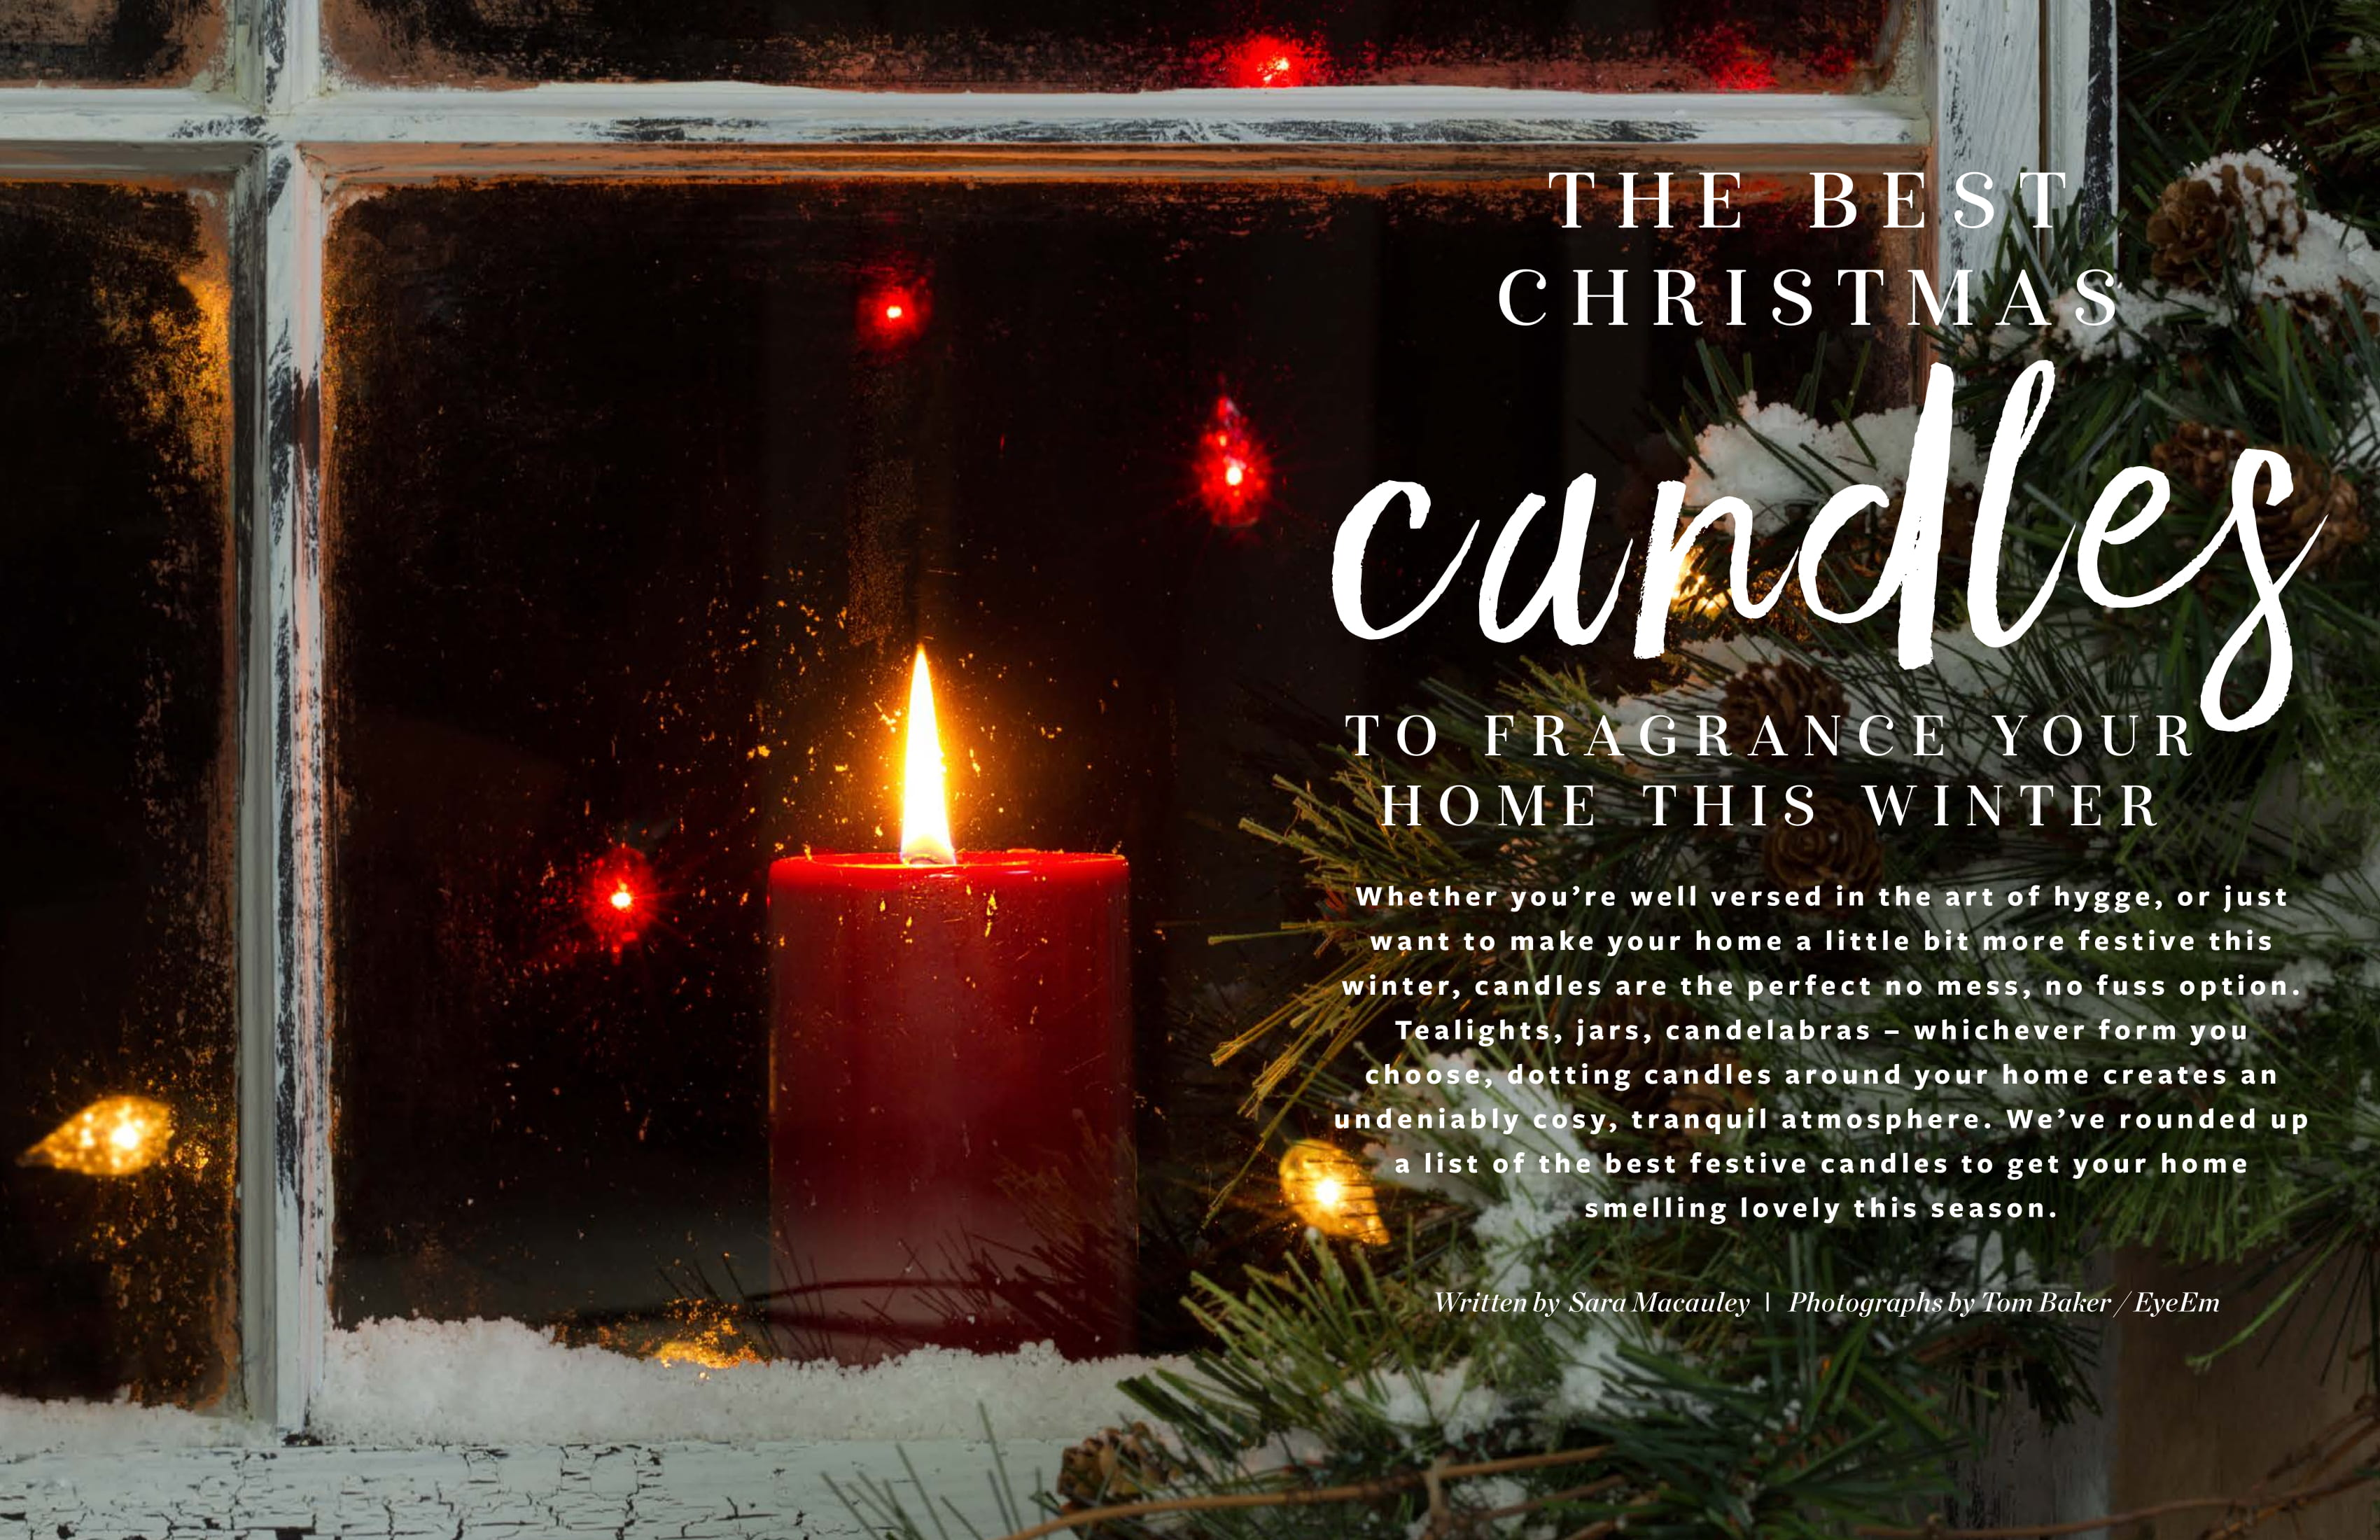 Best Christmas Candles 2018.Fragrance Your Home This Winter With Candles Wom Magazine